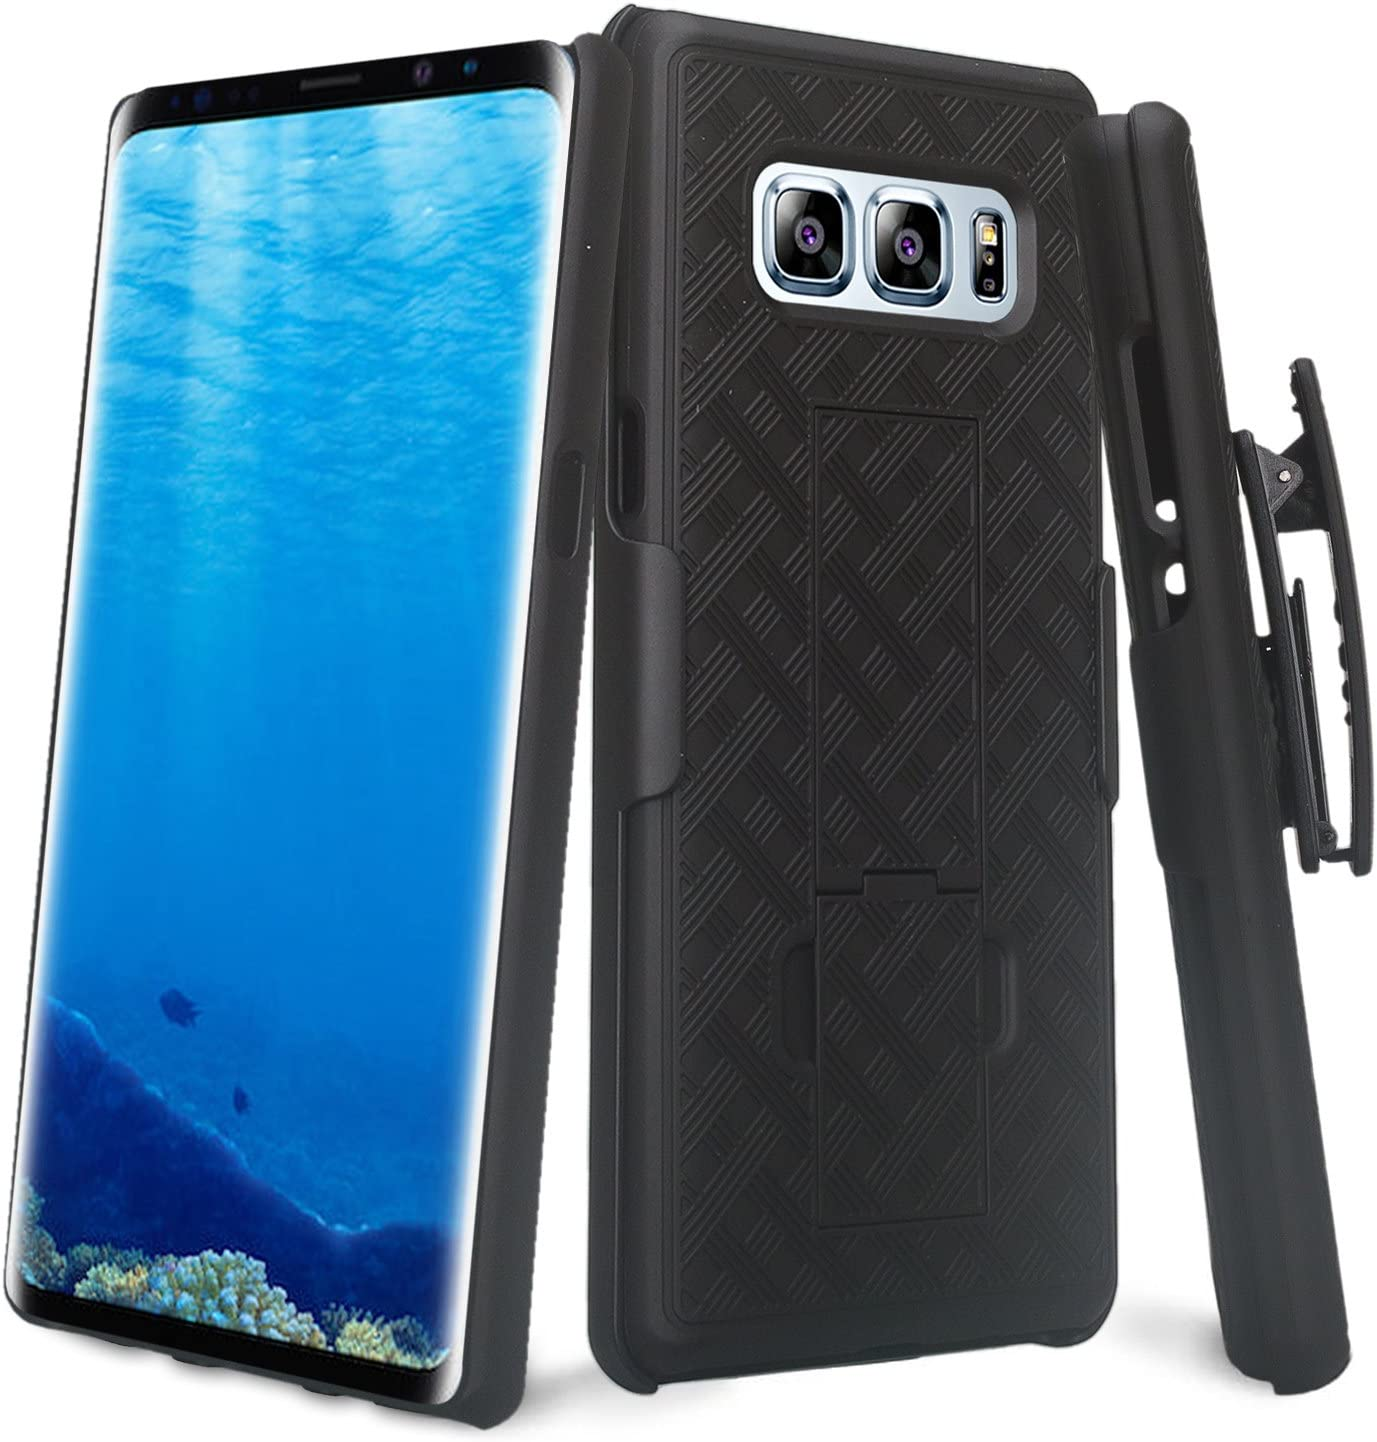 Galaxy Note 8 Case Swivel Slim Belt Clip Holster Armor Protective Case, Defender Cover Compatible for Samsung Galaxy Note 8 (Black Holster)